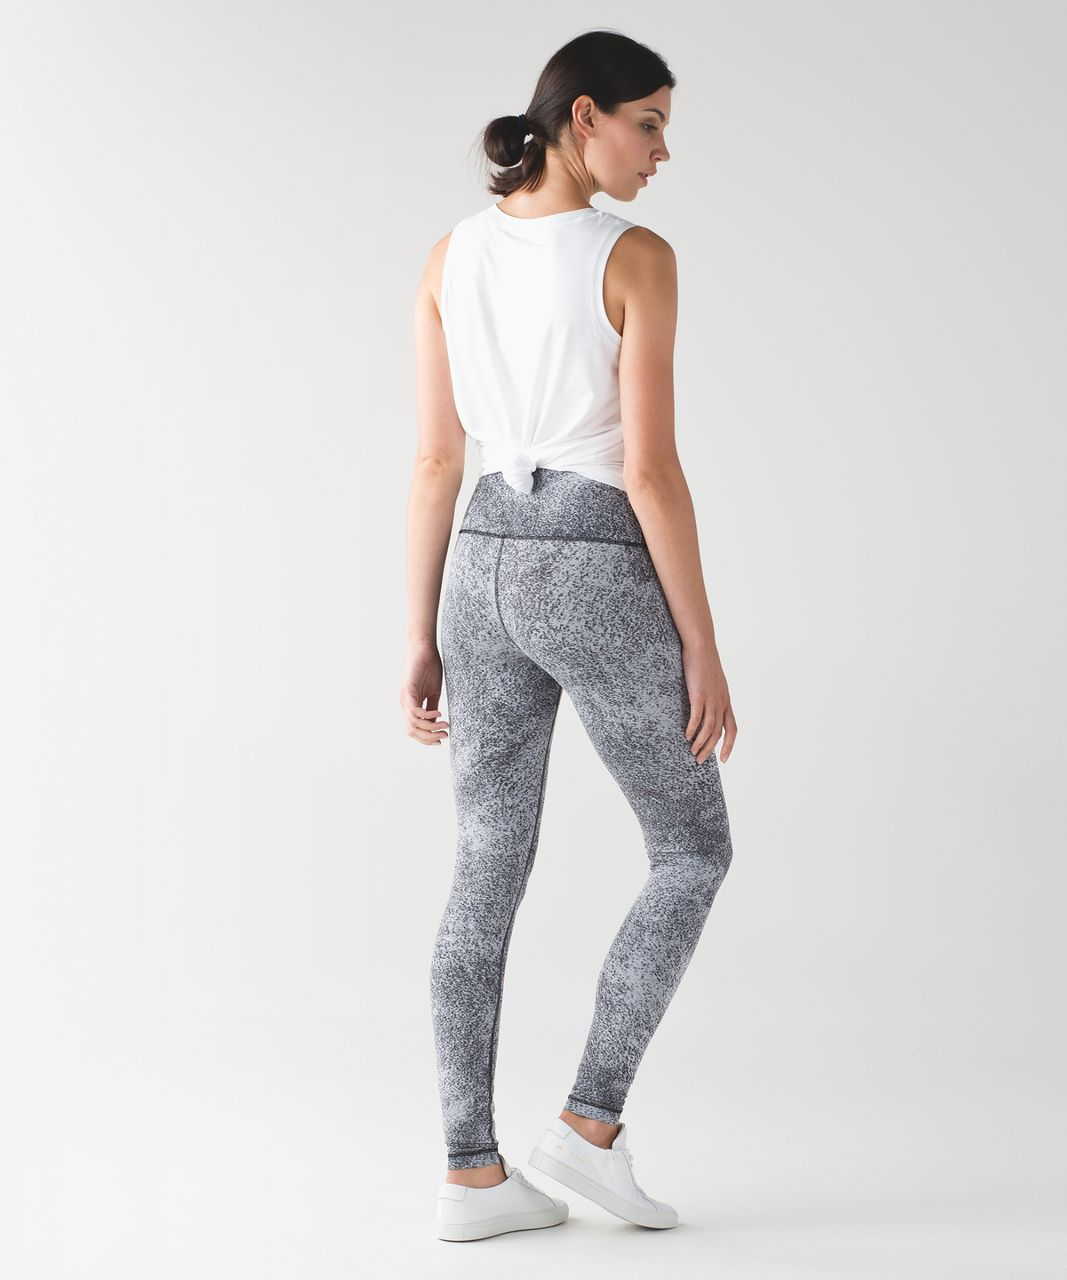 Lululemon Wunder Under Pant (Hi-Rise) - Luon Spray Jacquard White Black